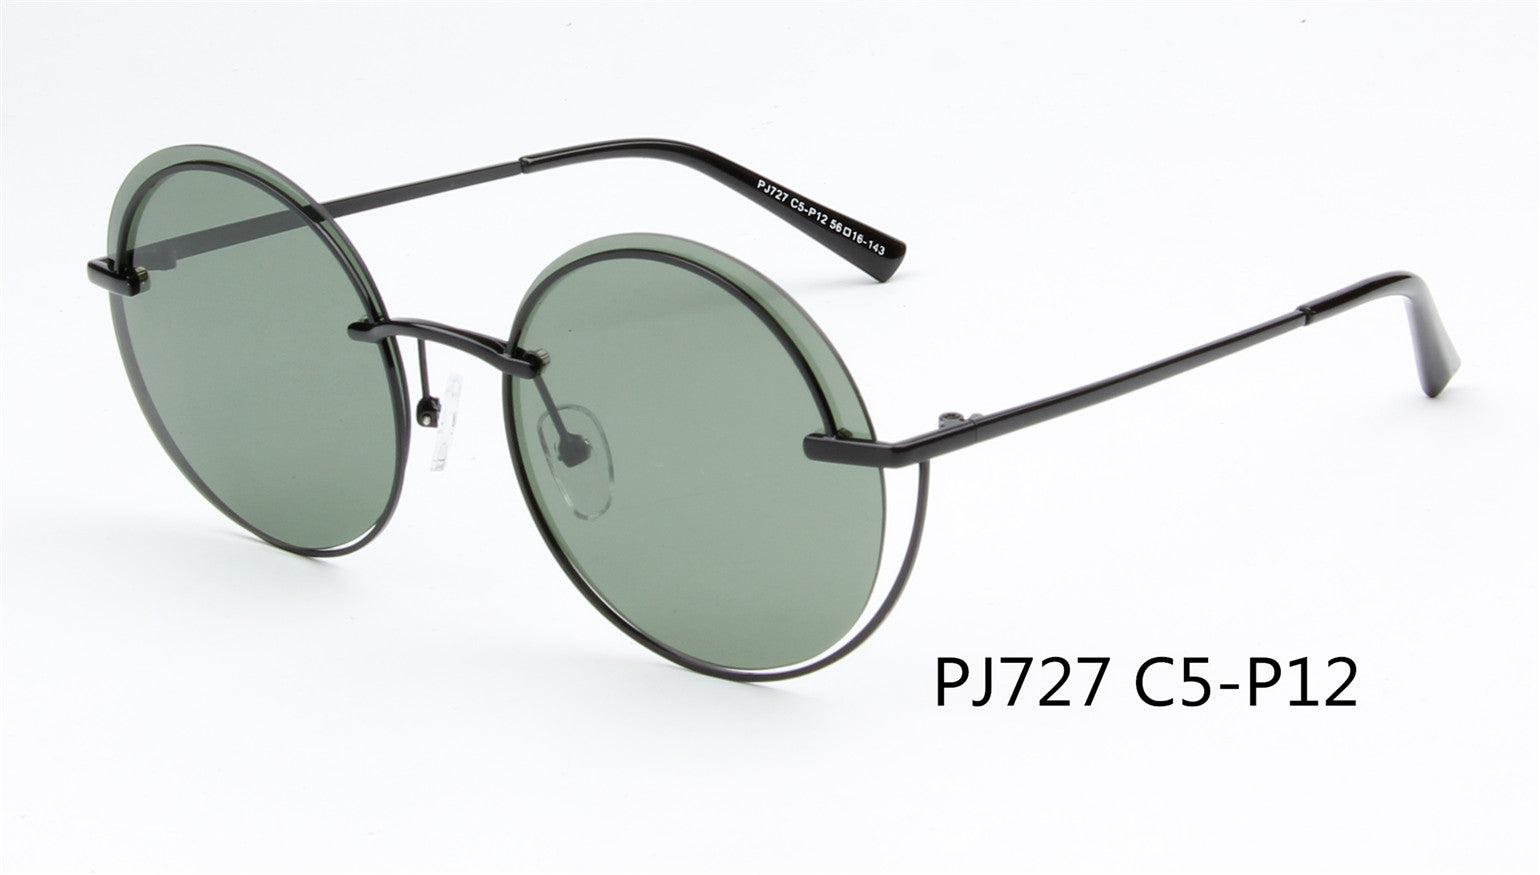 SHIV-PJ727 - Women Round Polarized Fashion Sunglasses